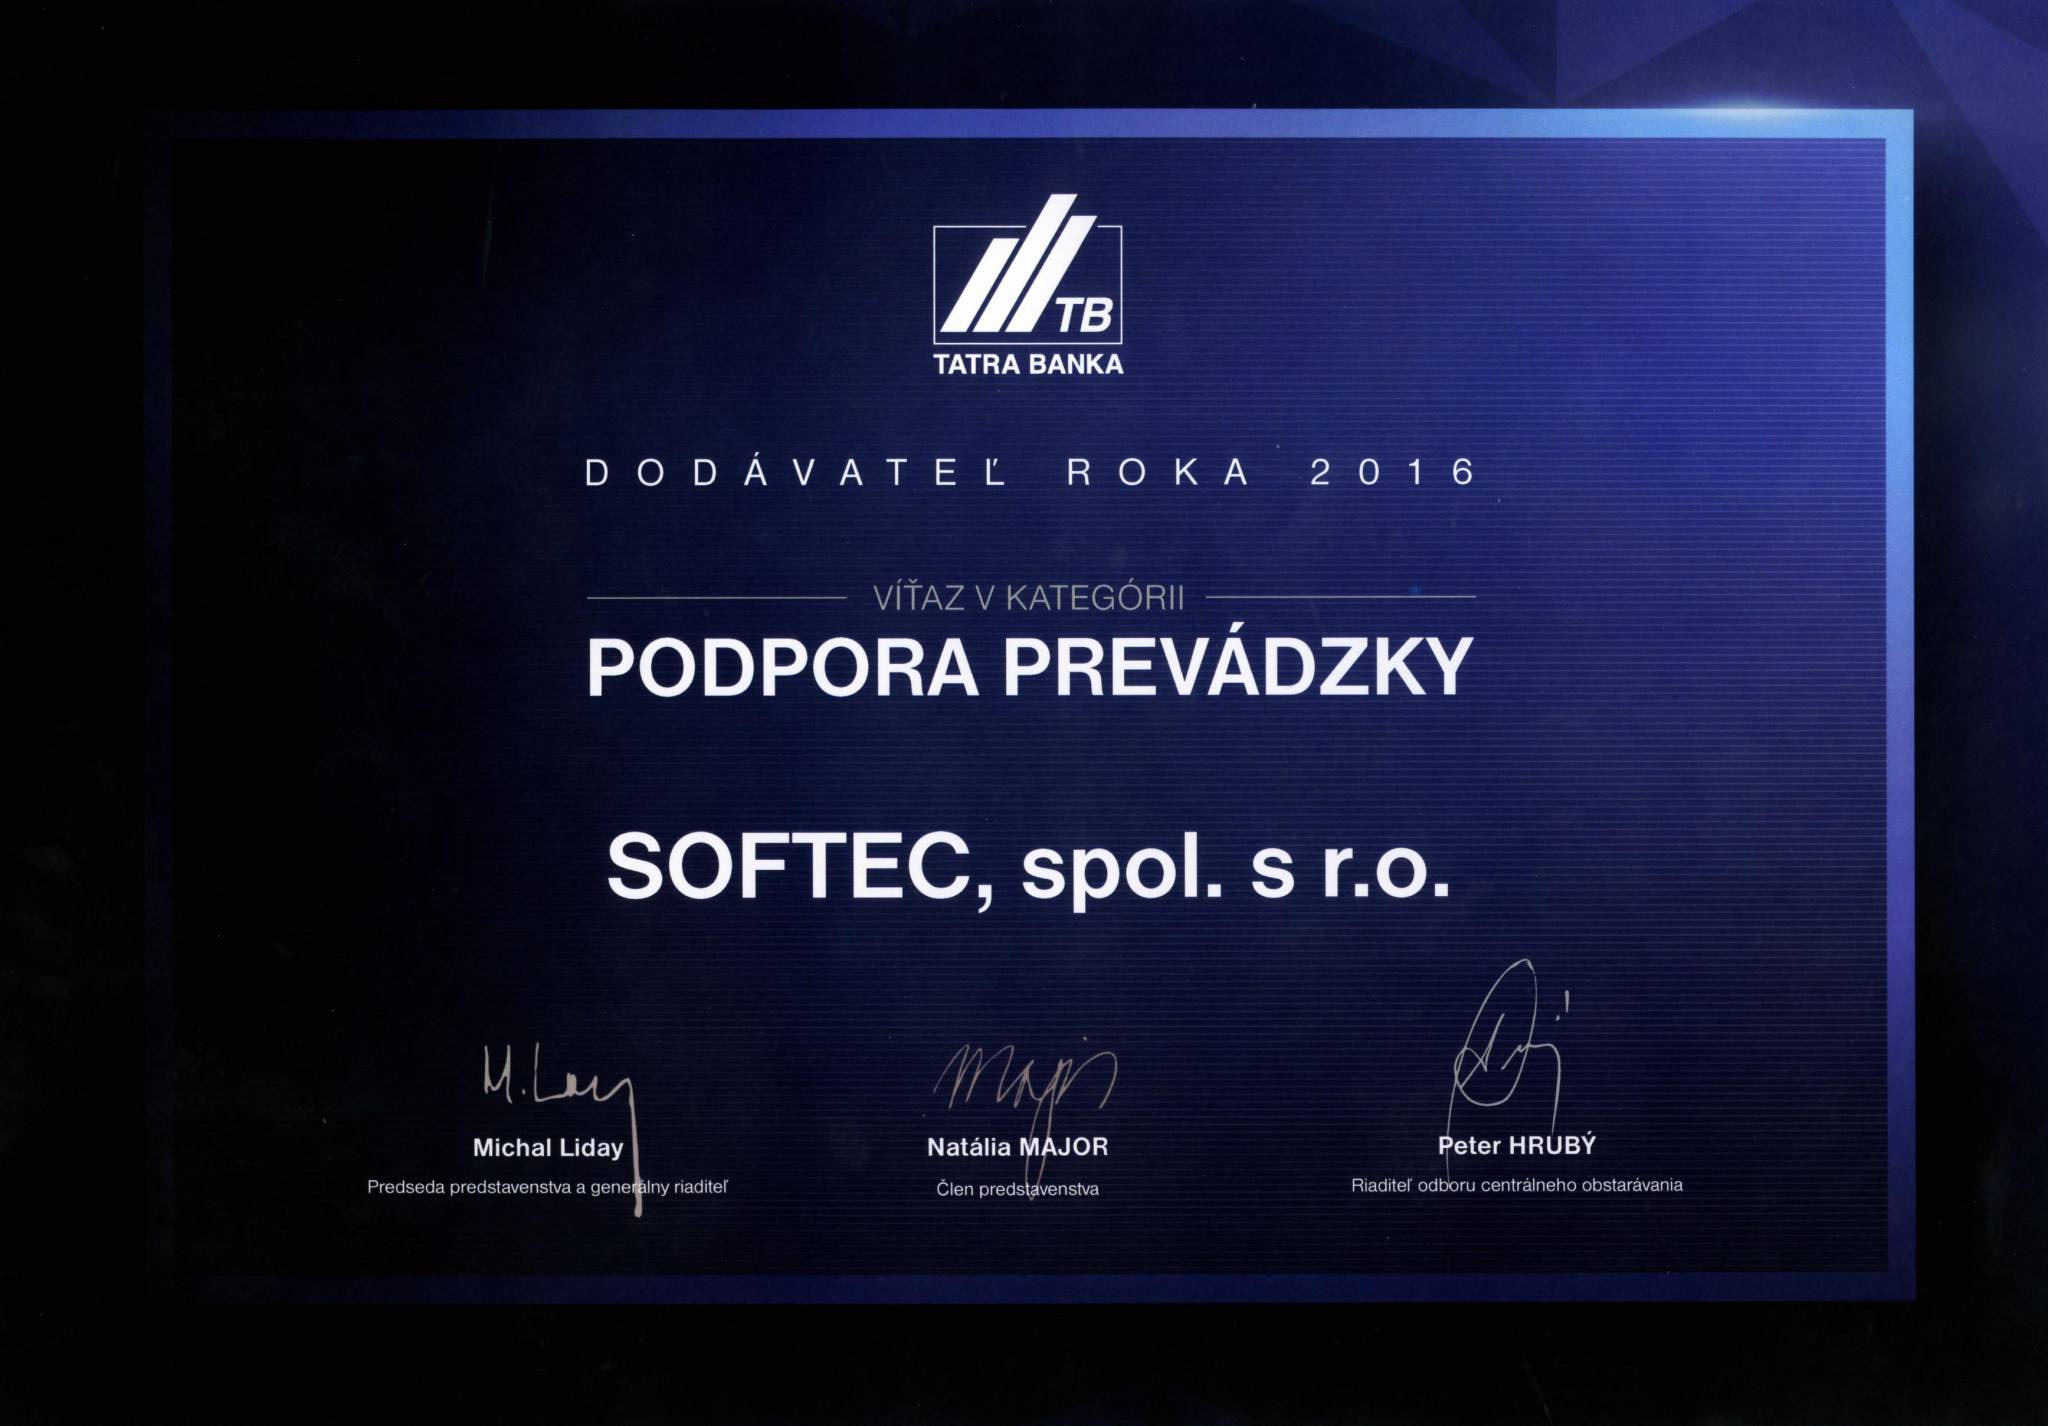 Softec_Supplier_Of_The_Year_2016_Tatrabanka